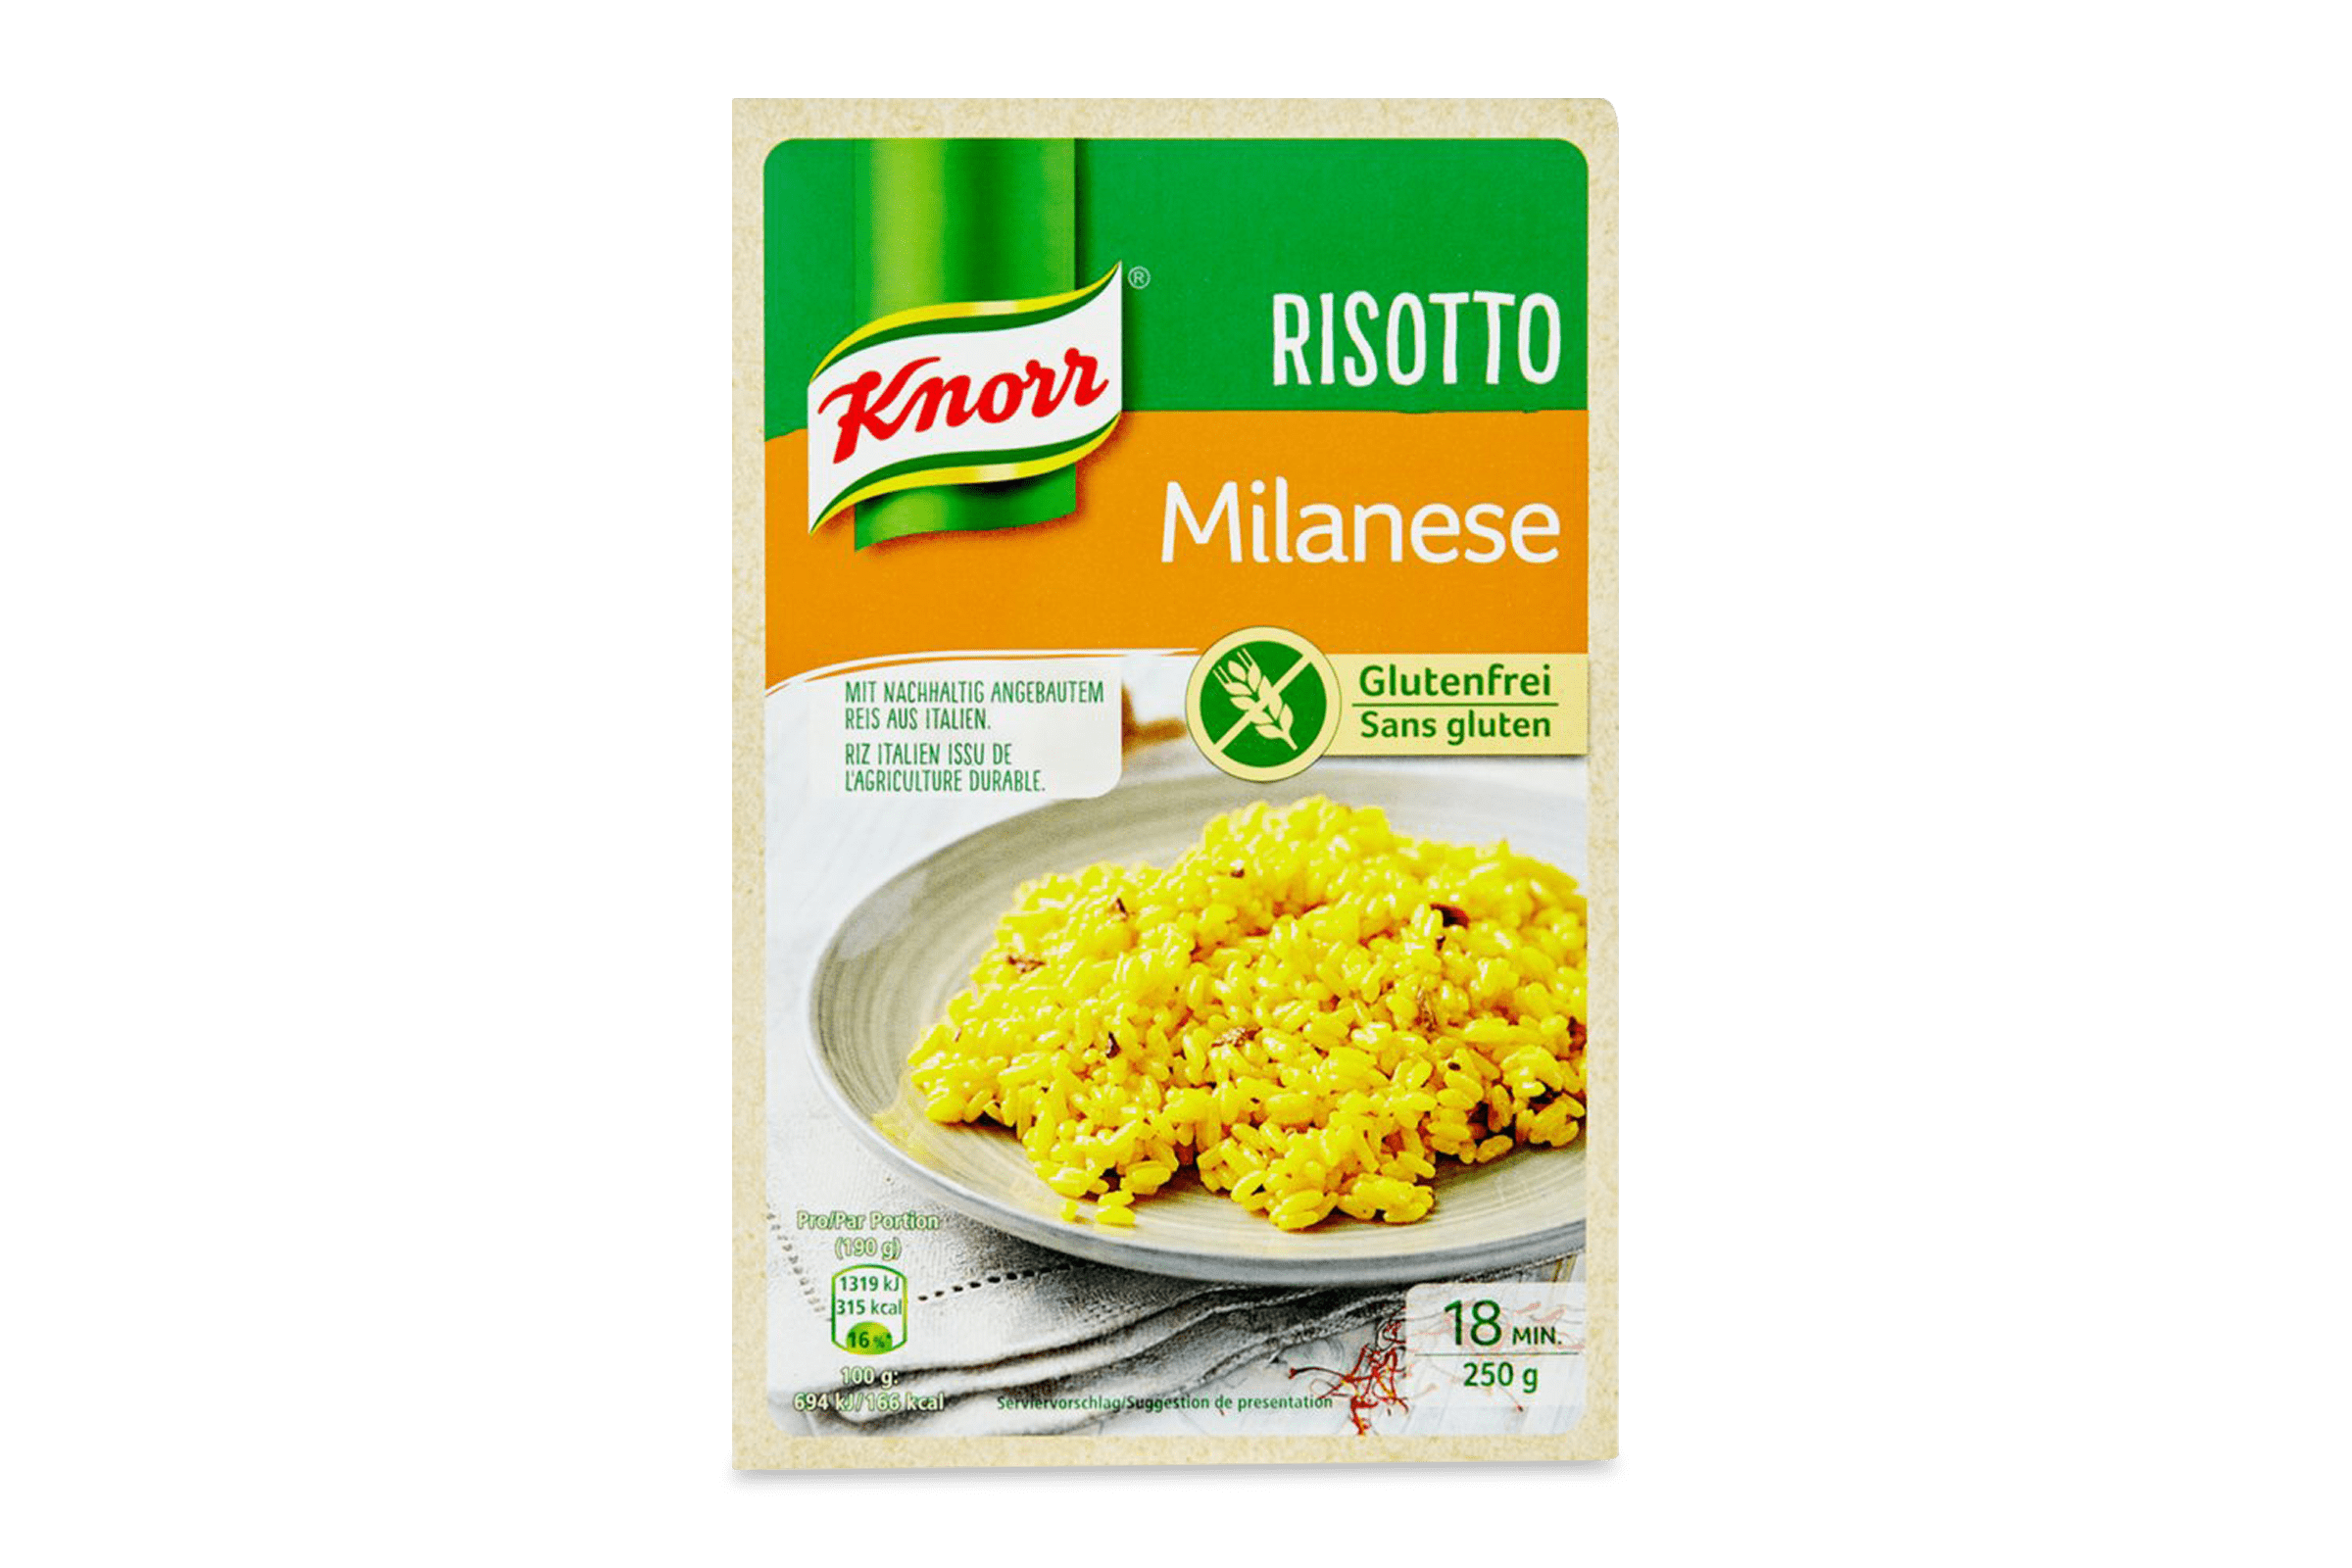 Risotto Milanese 250g 1